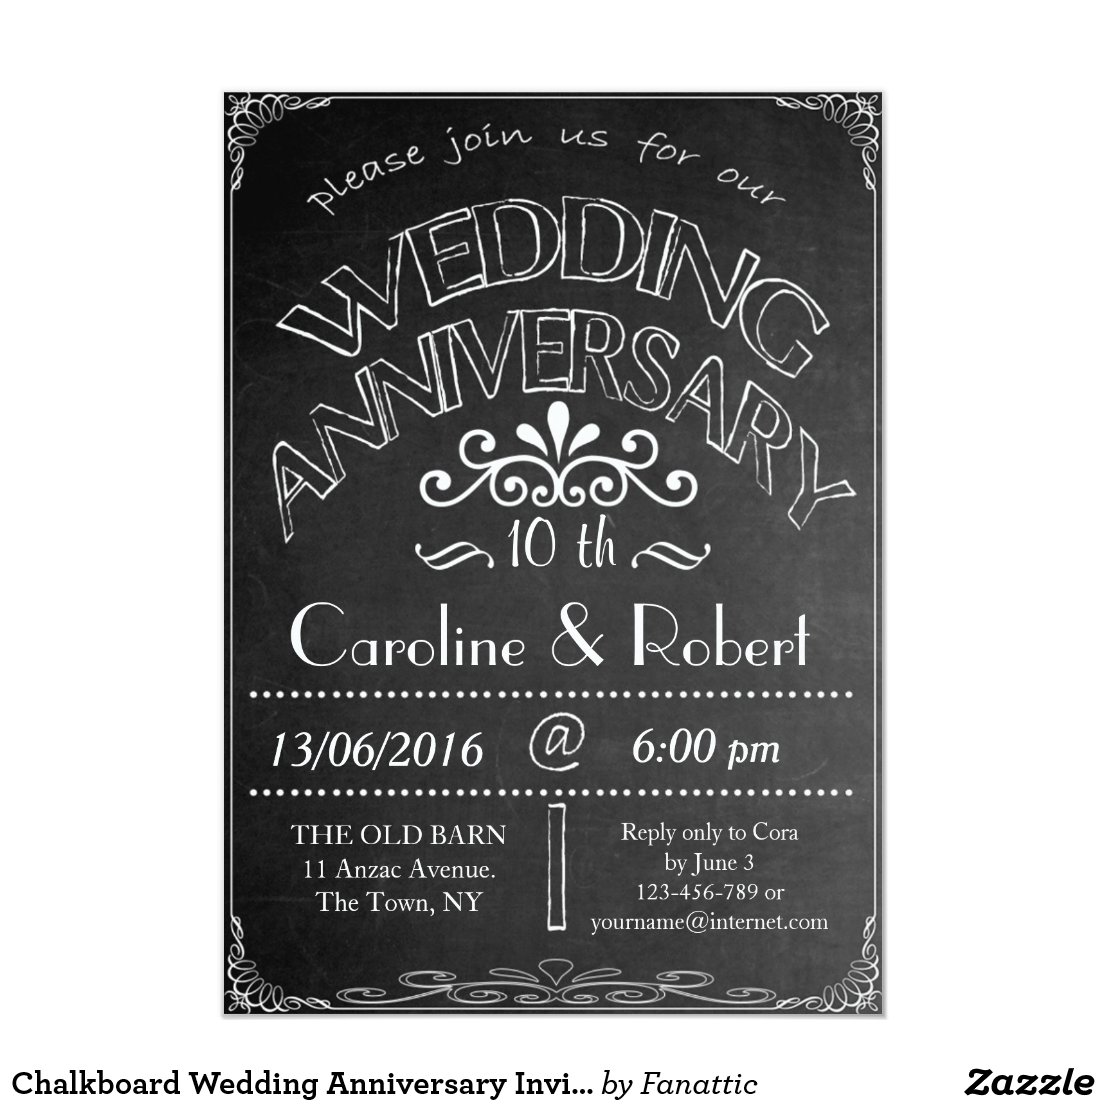 Chalkboard Wedding Anniversary Invitation